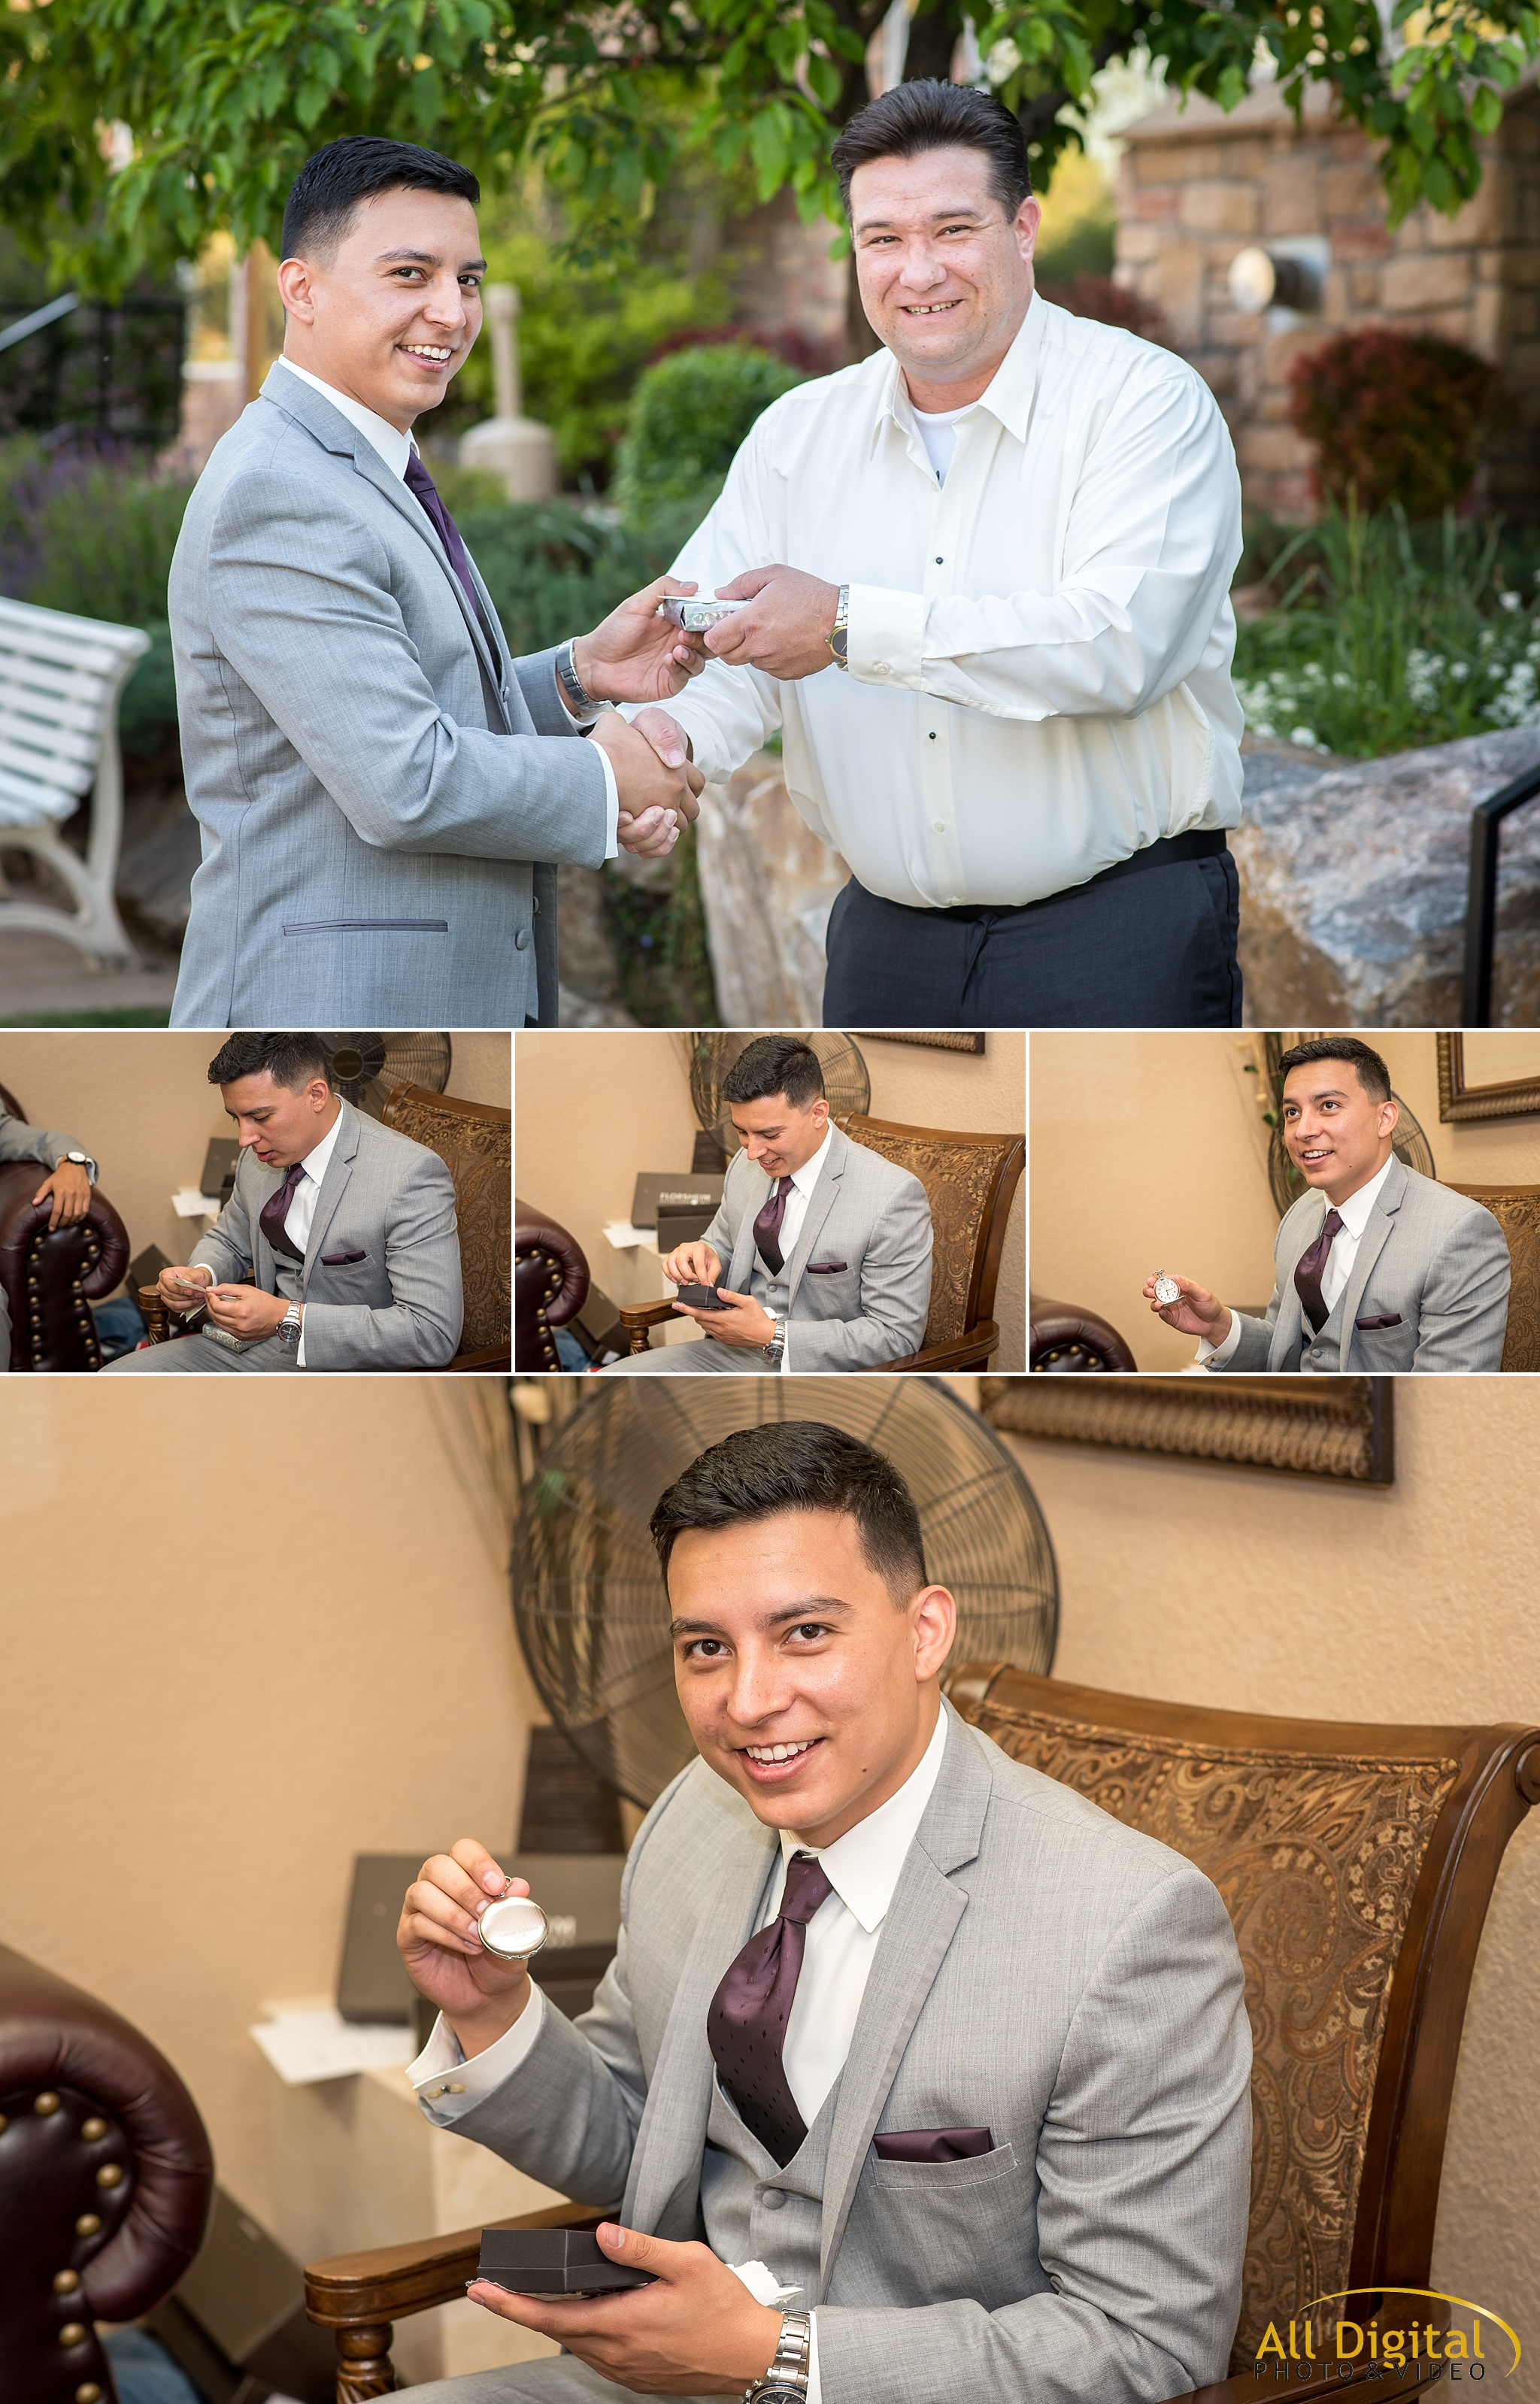 Groom receiving a gift from his bride before the ceremony at Stonebrook Manor.